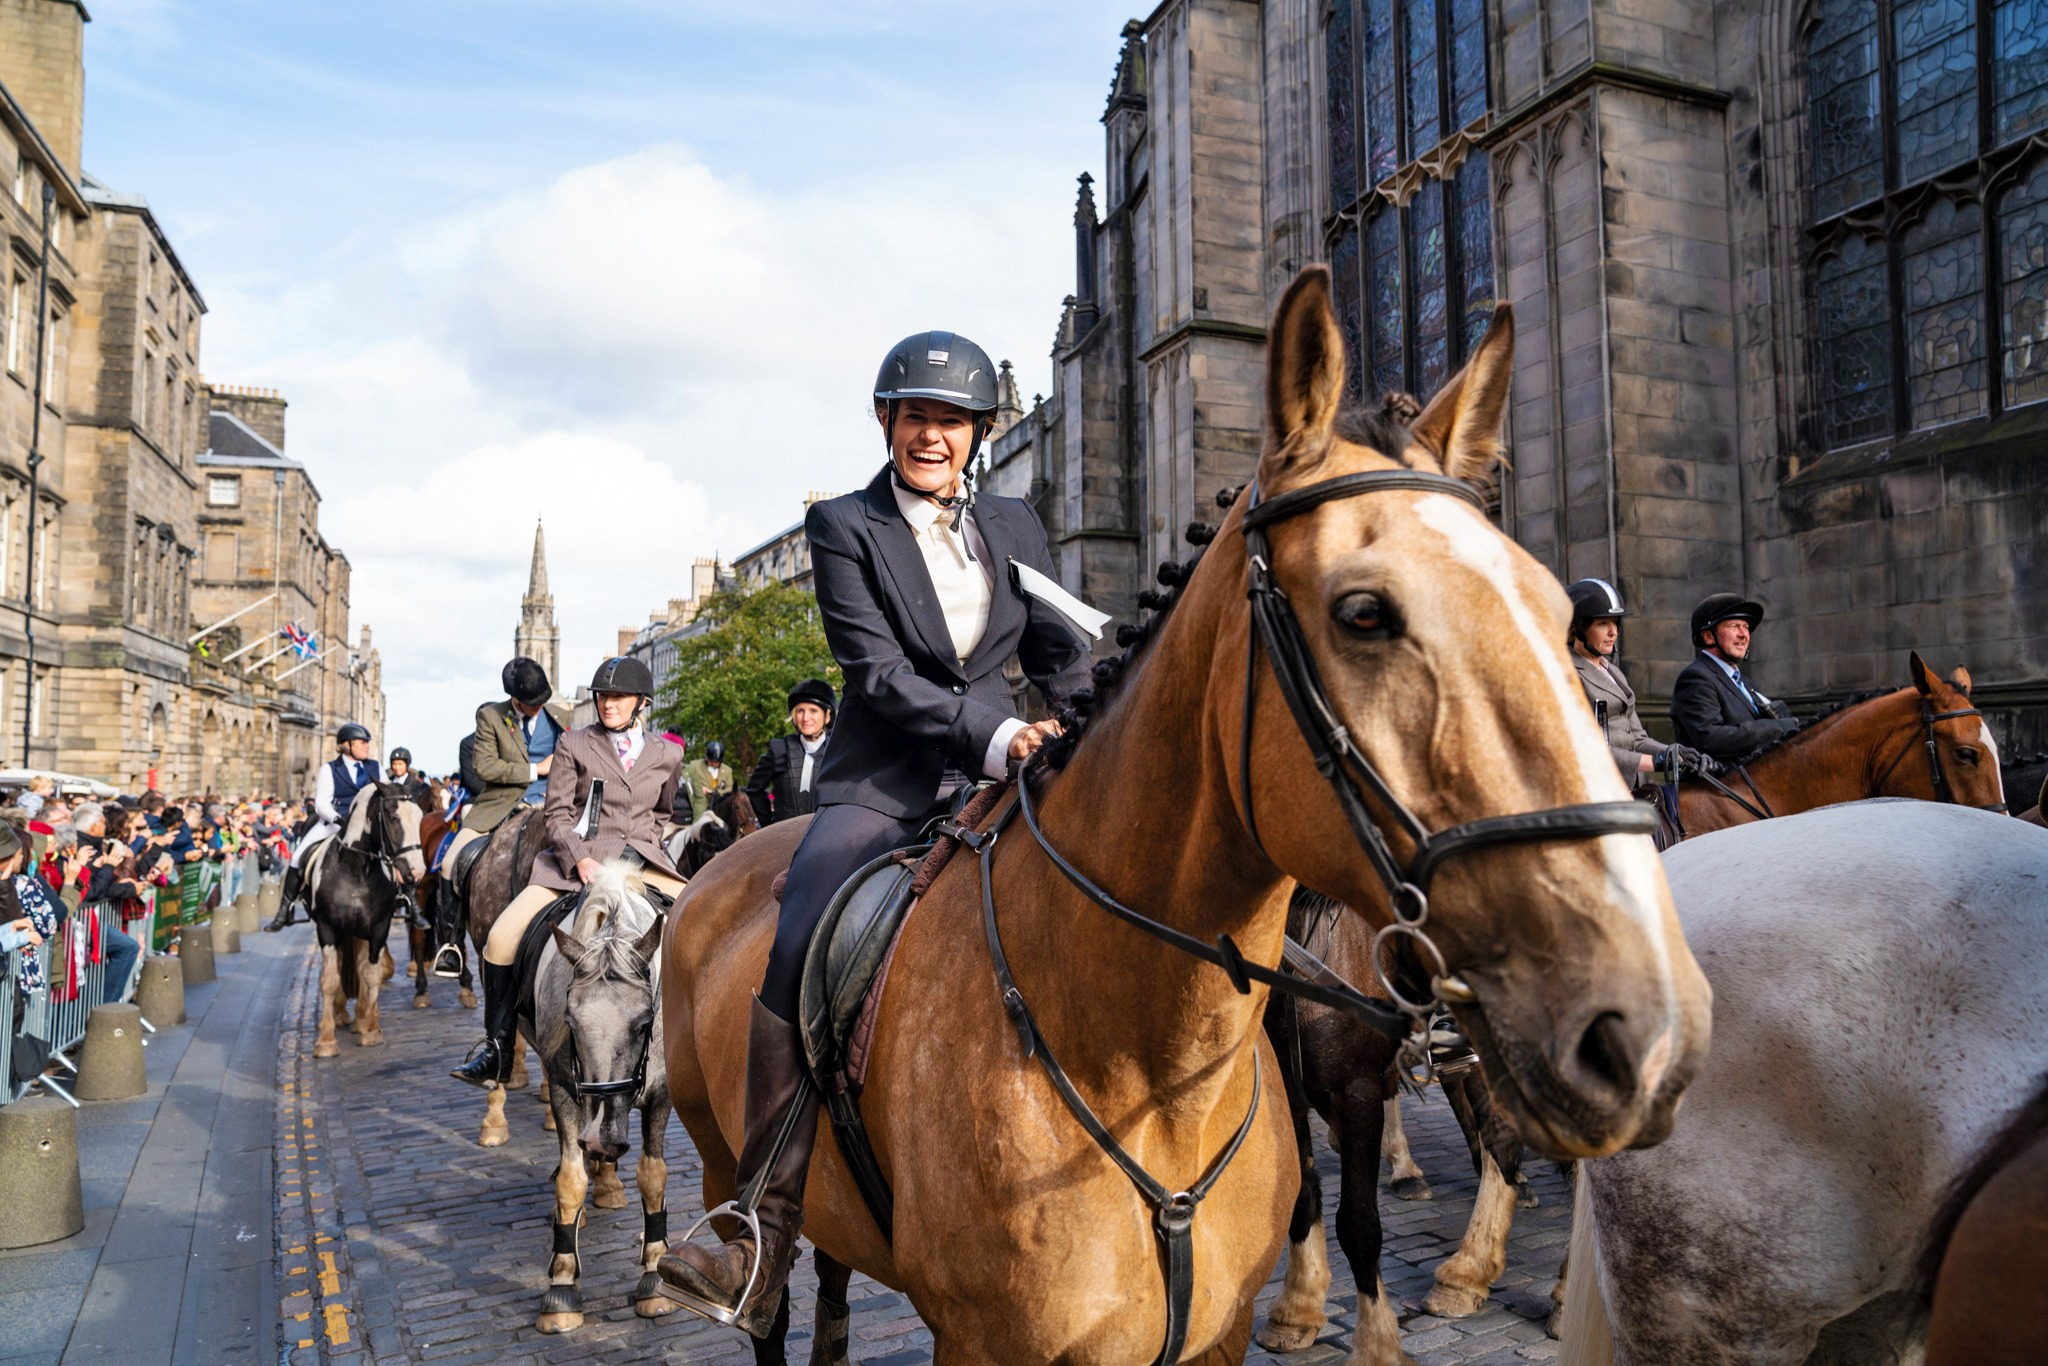 Scottish Borders Ride - Globetrotting horse riding holidays